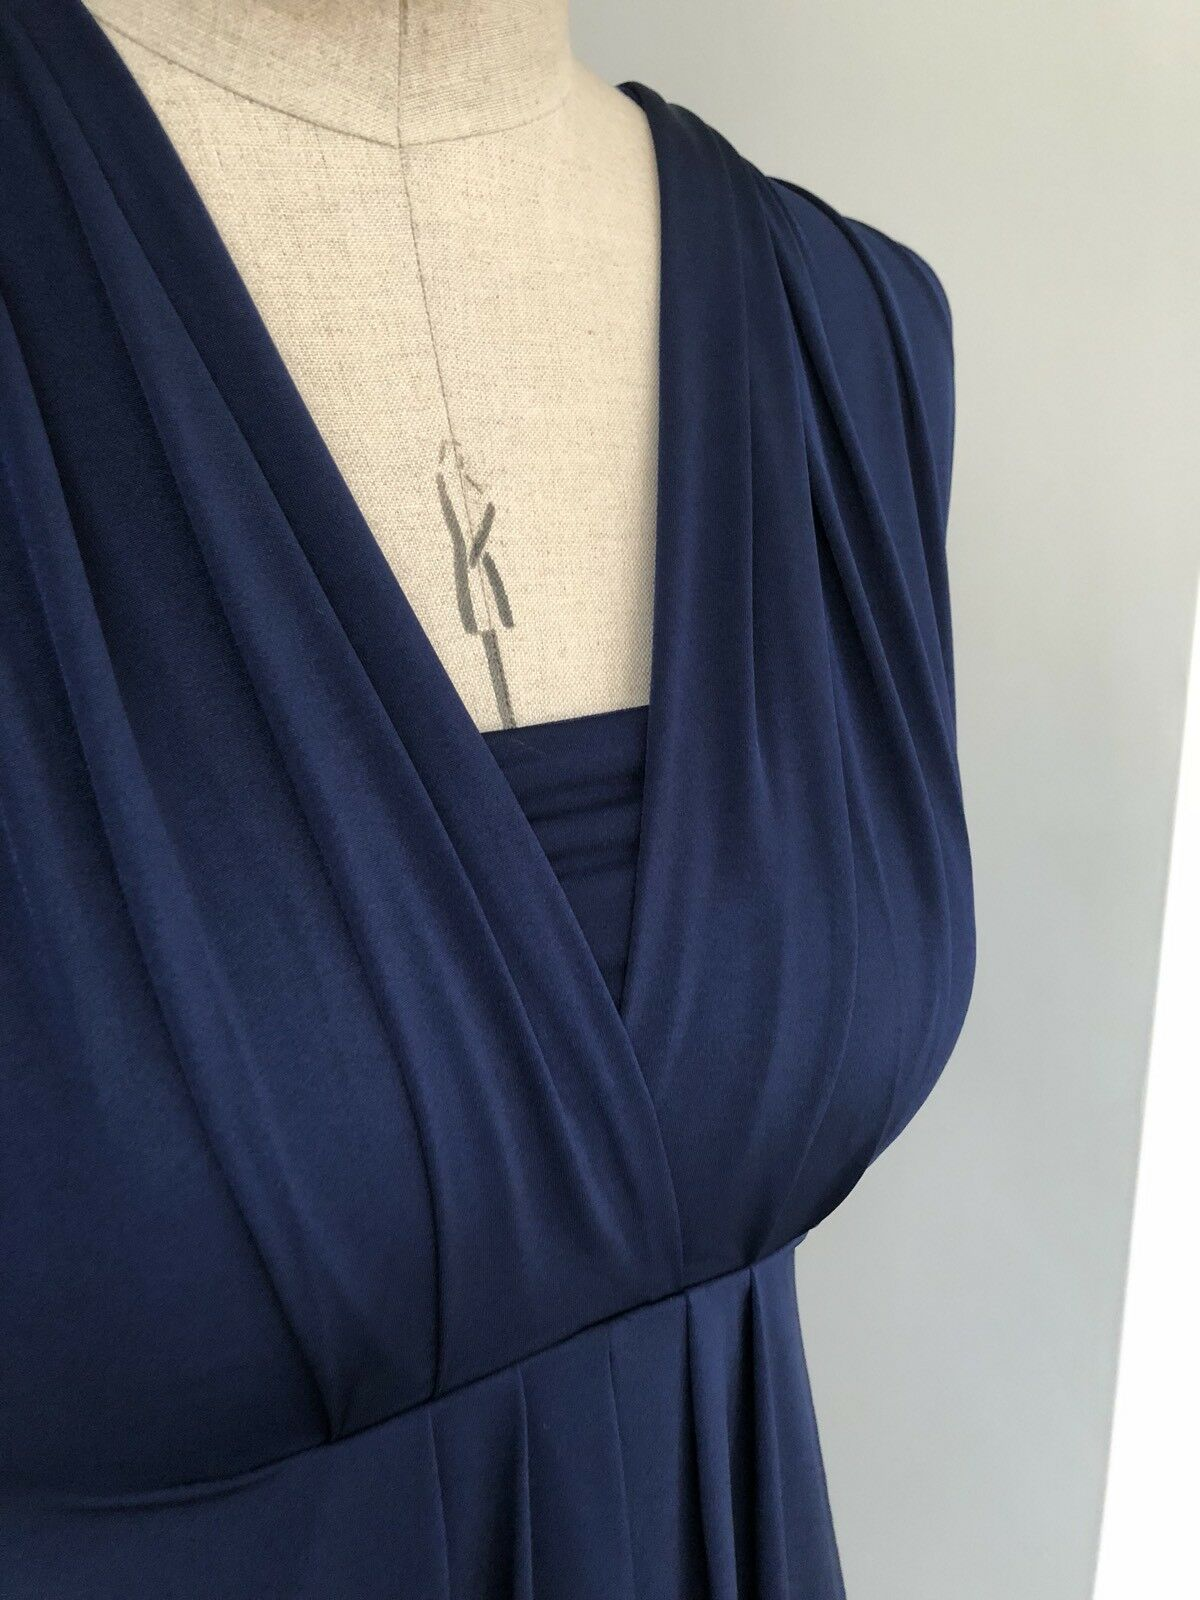 SIZE 12 MARKS & SPENCERS MULTIWAY MULTIPLE STYLES DRESS SILK JERSEY NAVY STRETCH